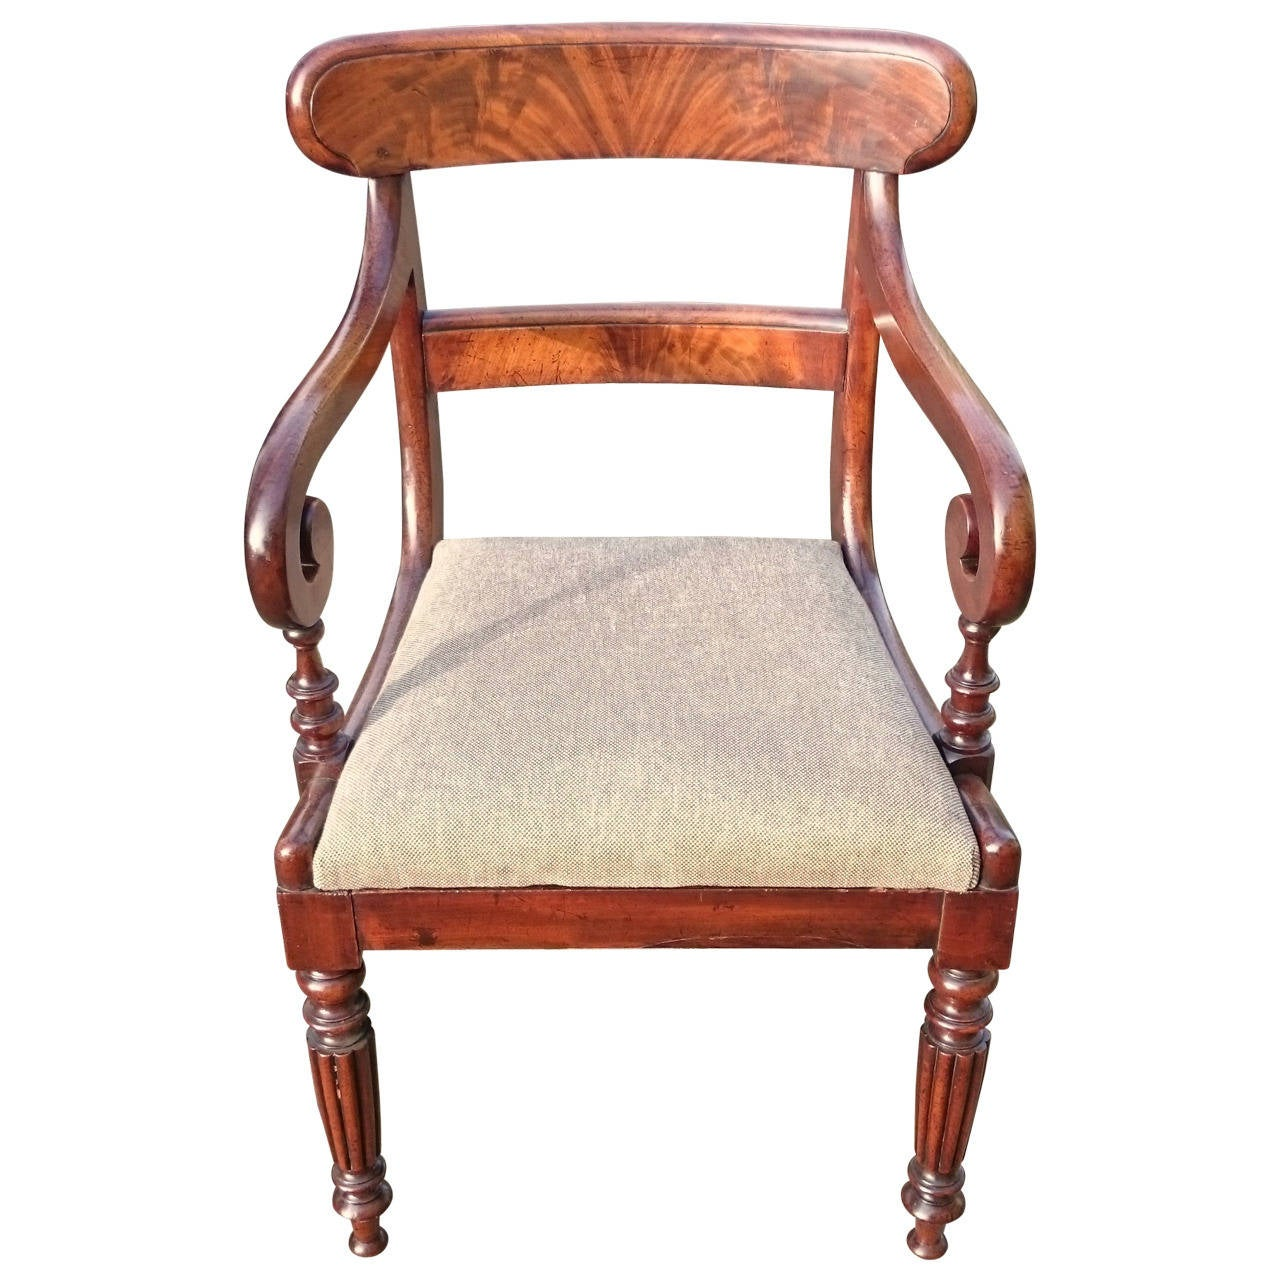 Antique Dining / Desk / Carver / Library Chair For Sale - Antique Dining / Desk / Carver / Library Chair For Sale At 1stdibs